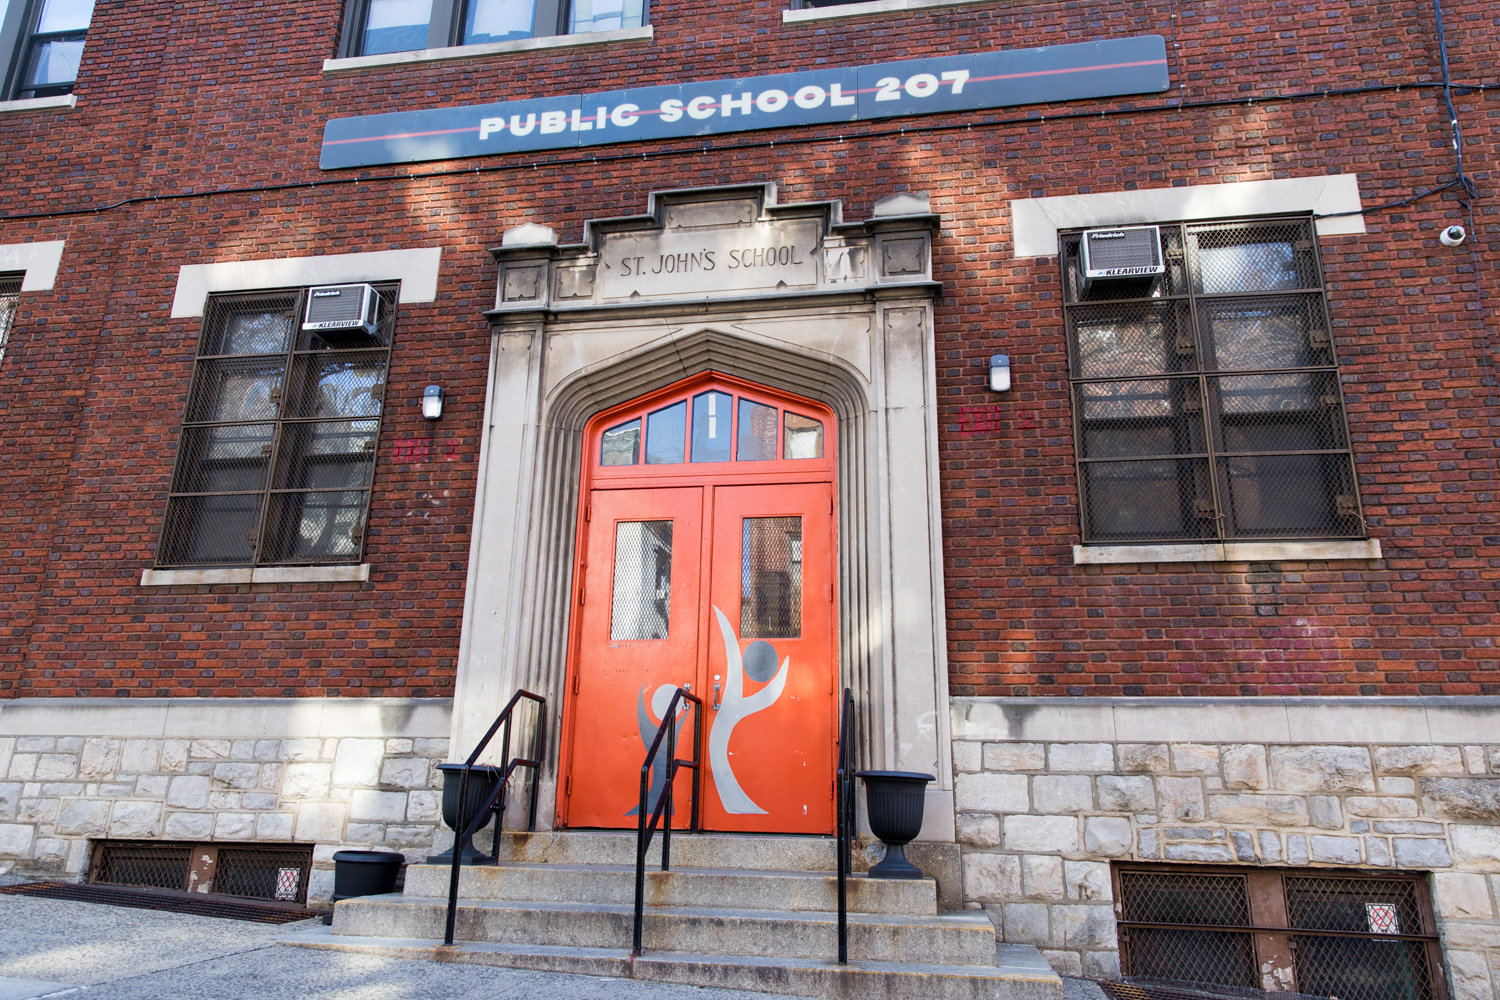 P.S. 207 is one among many school closures citywide following a press conference by Mayor Bill de Blasio in which he announced that schools would remain closed until at least April 20.